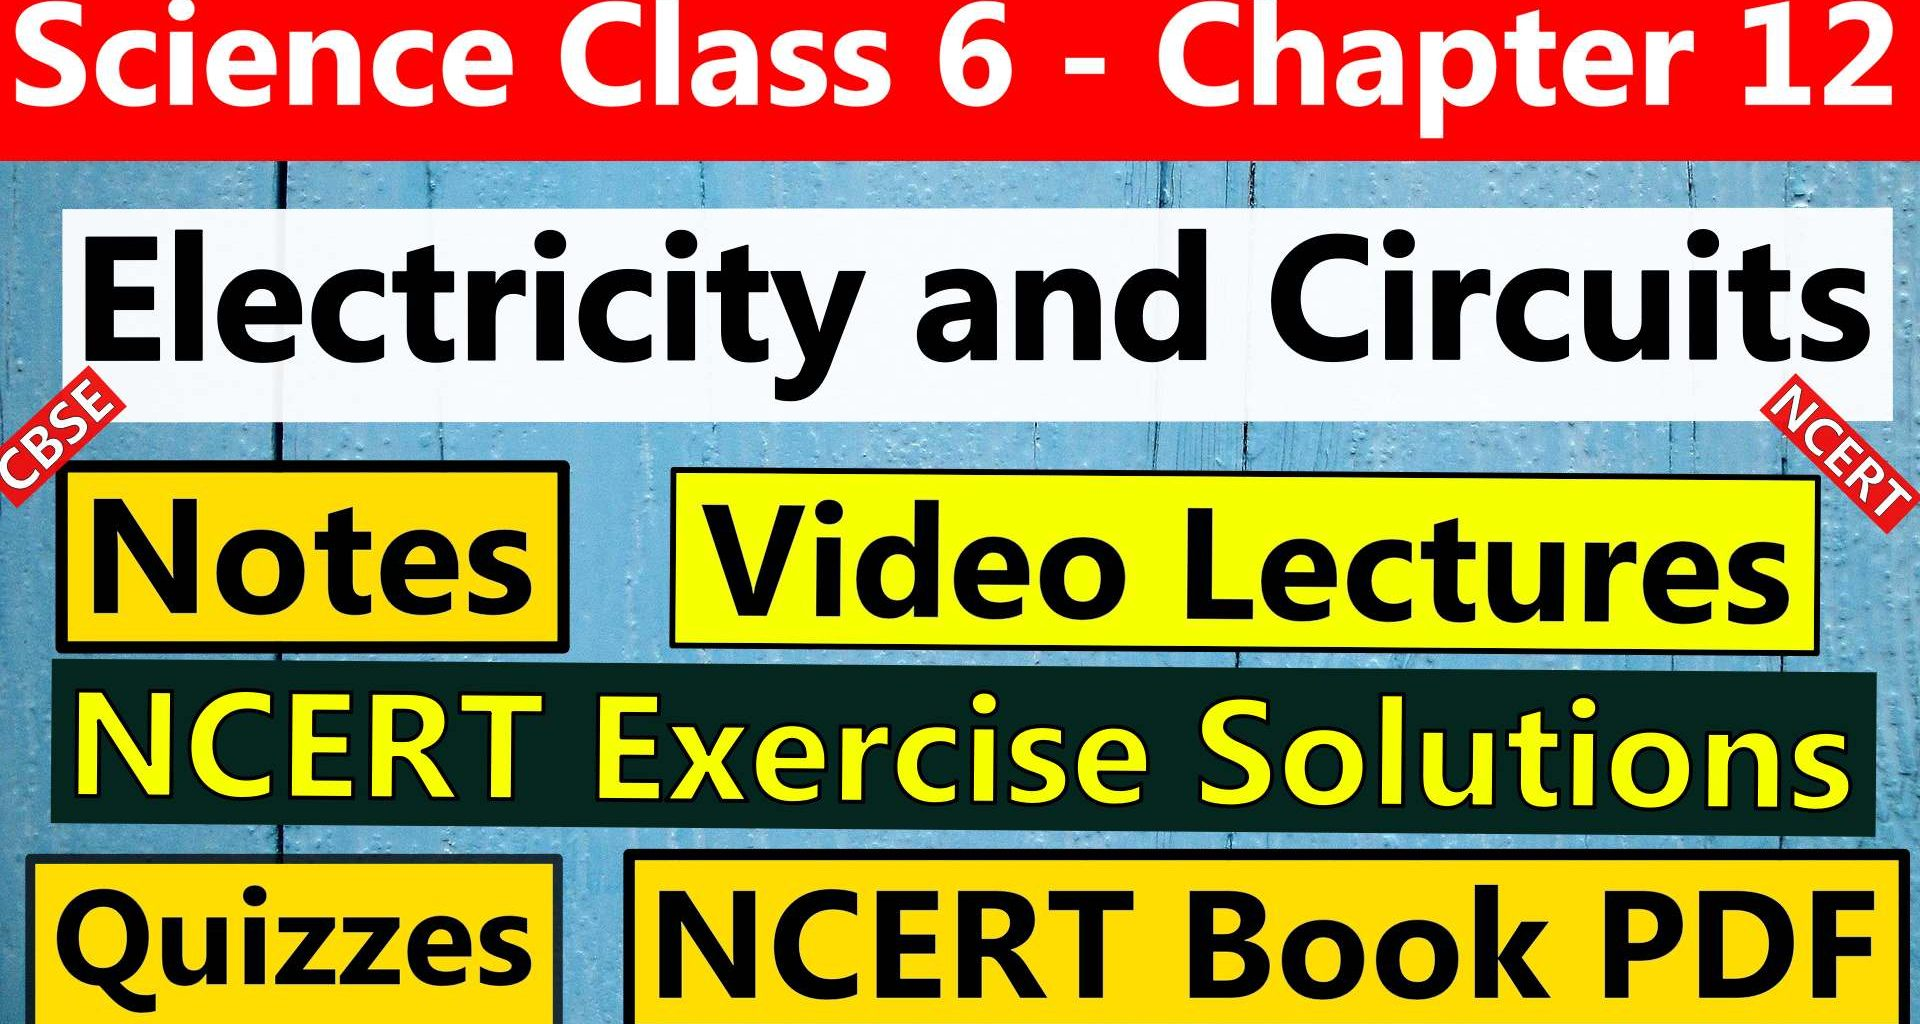 Science Class 6 Chapter 12 Electricity and Circuits